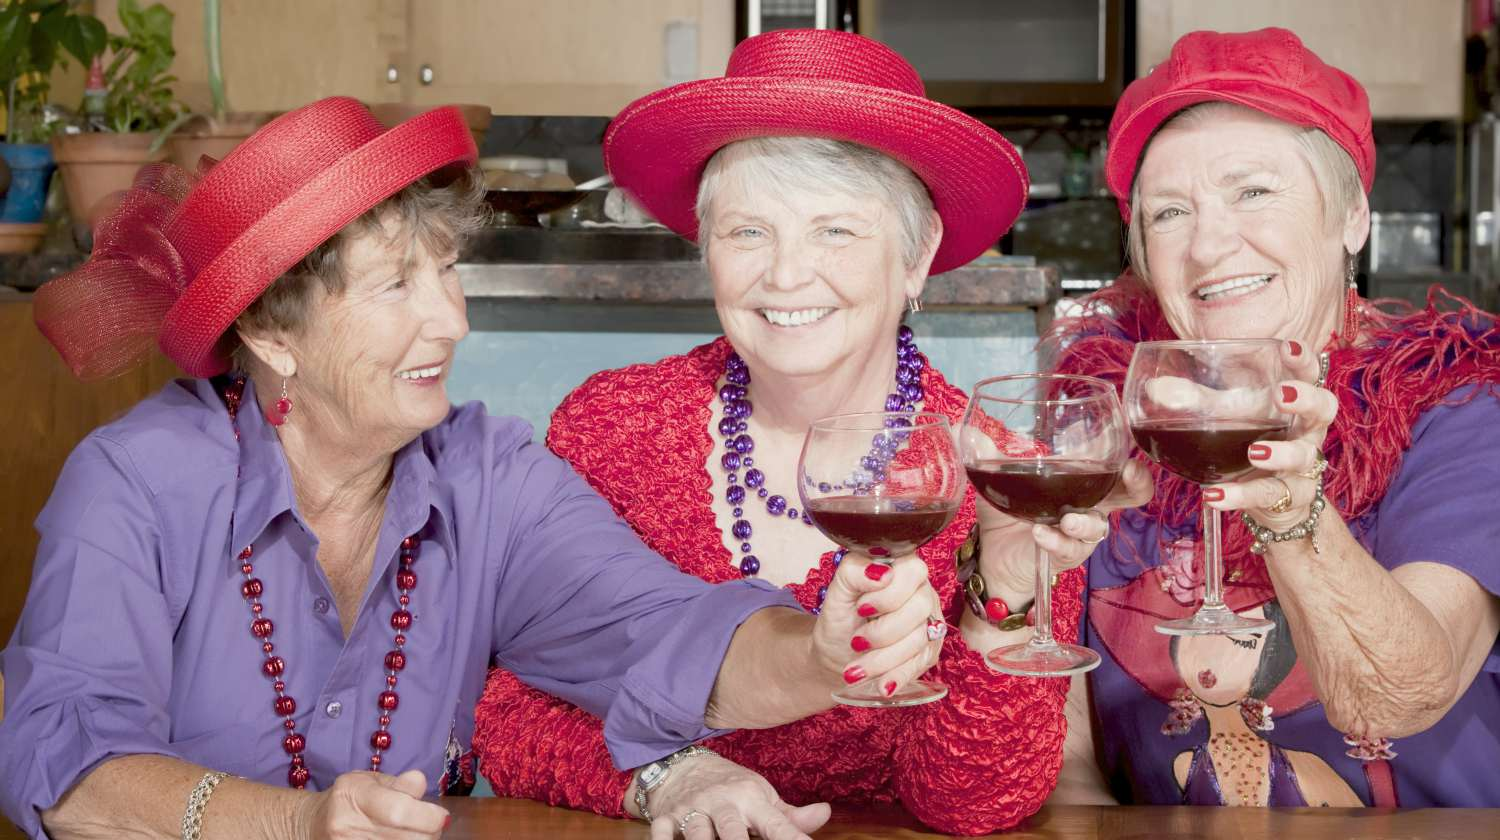 Featured   women wearing red hat   Reasons Why The Red Hat Society Is Worth Joining   What is the Red Hat Society all about